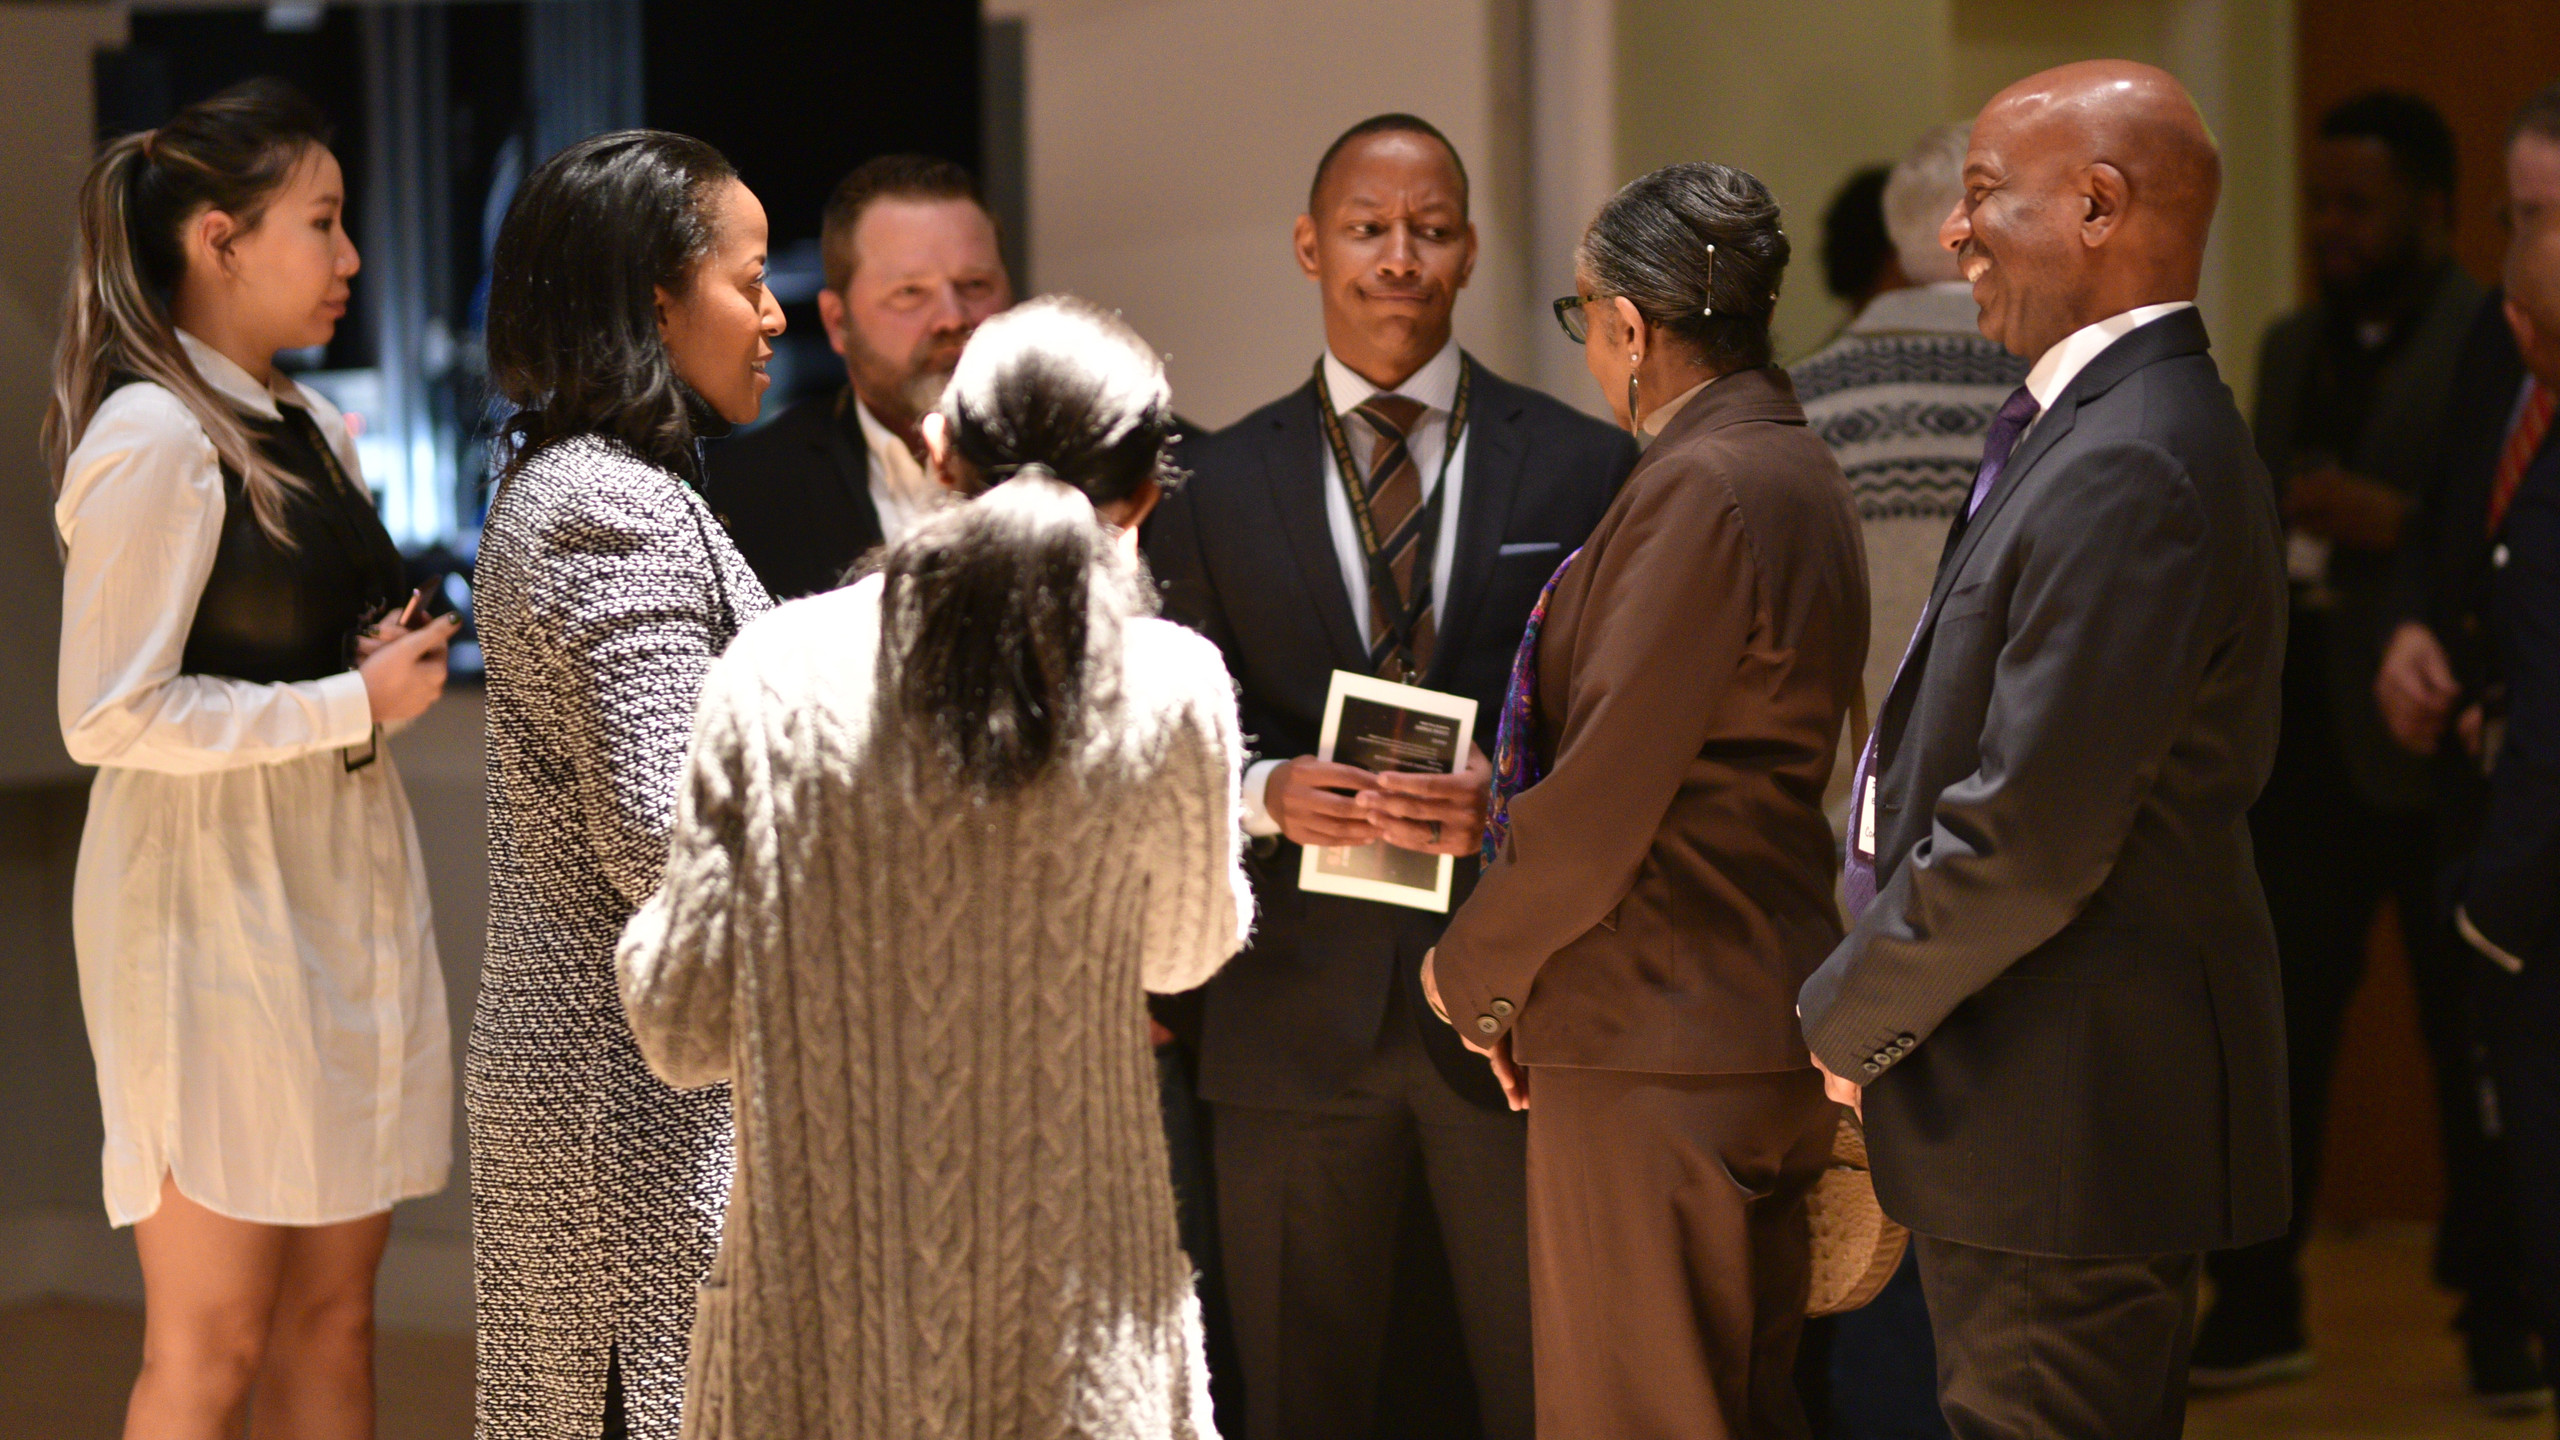 Event attendees standing and socializing